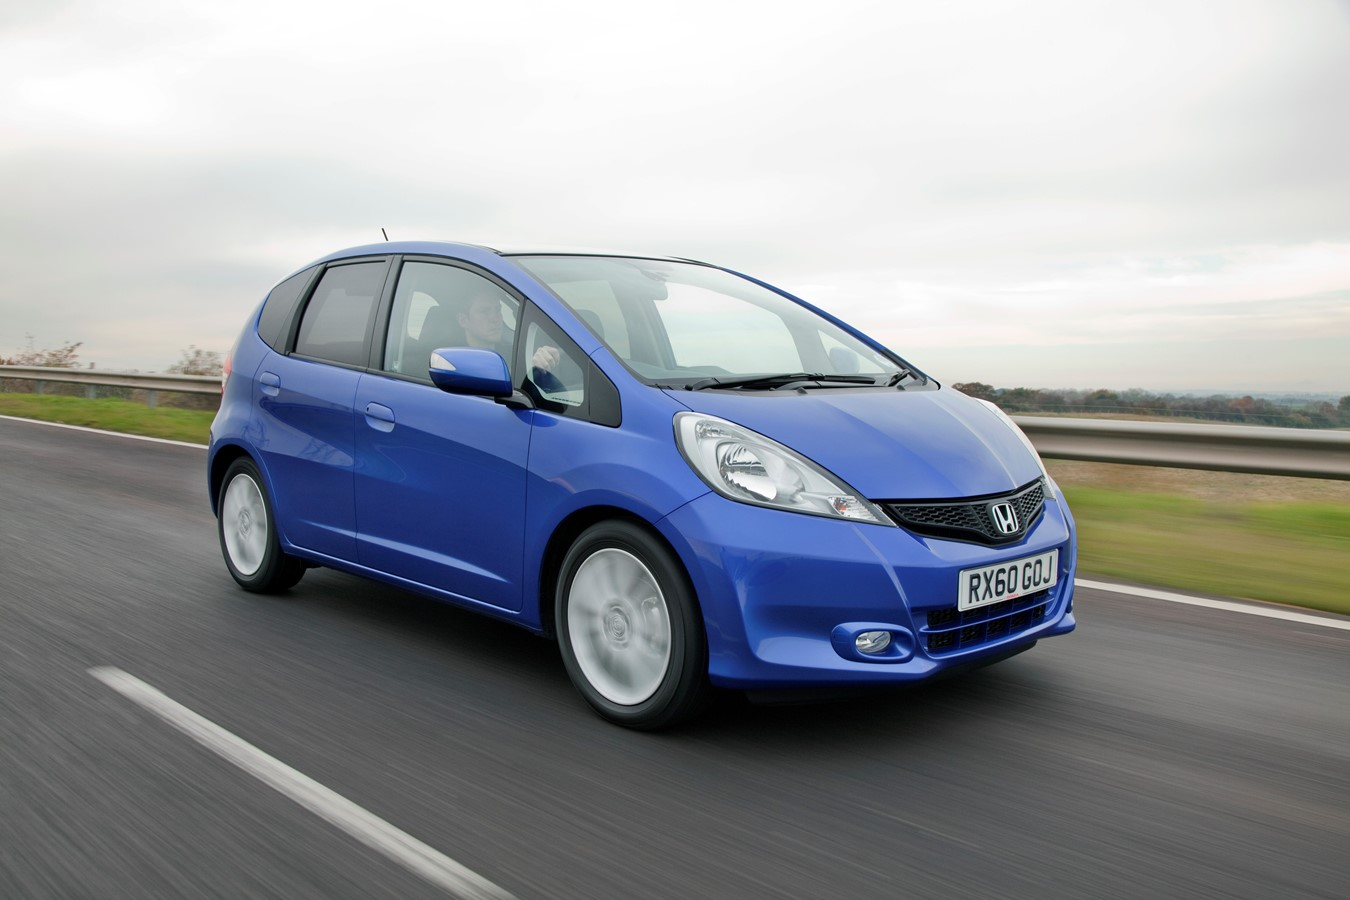 Honda named UK's most reliable car manufacturer for ninth consecutive year